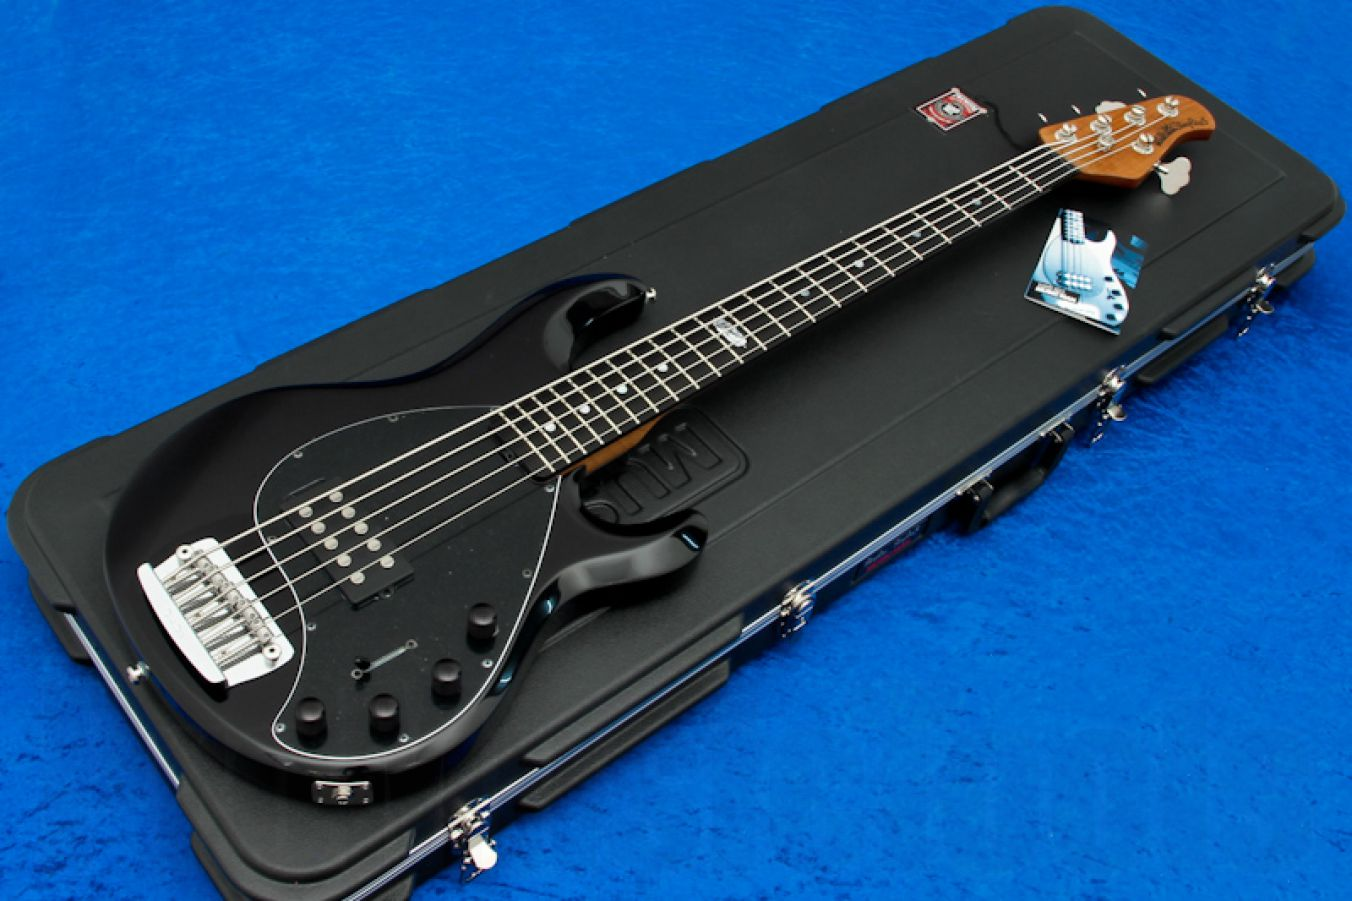 Music Man USA Stingray 5 BS - Black Sugar BFR Roasted Neck Limited Edition